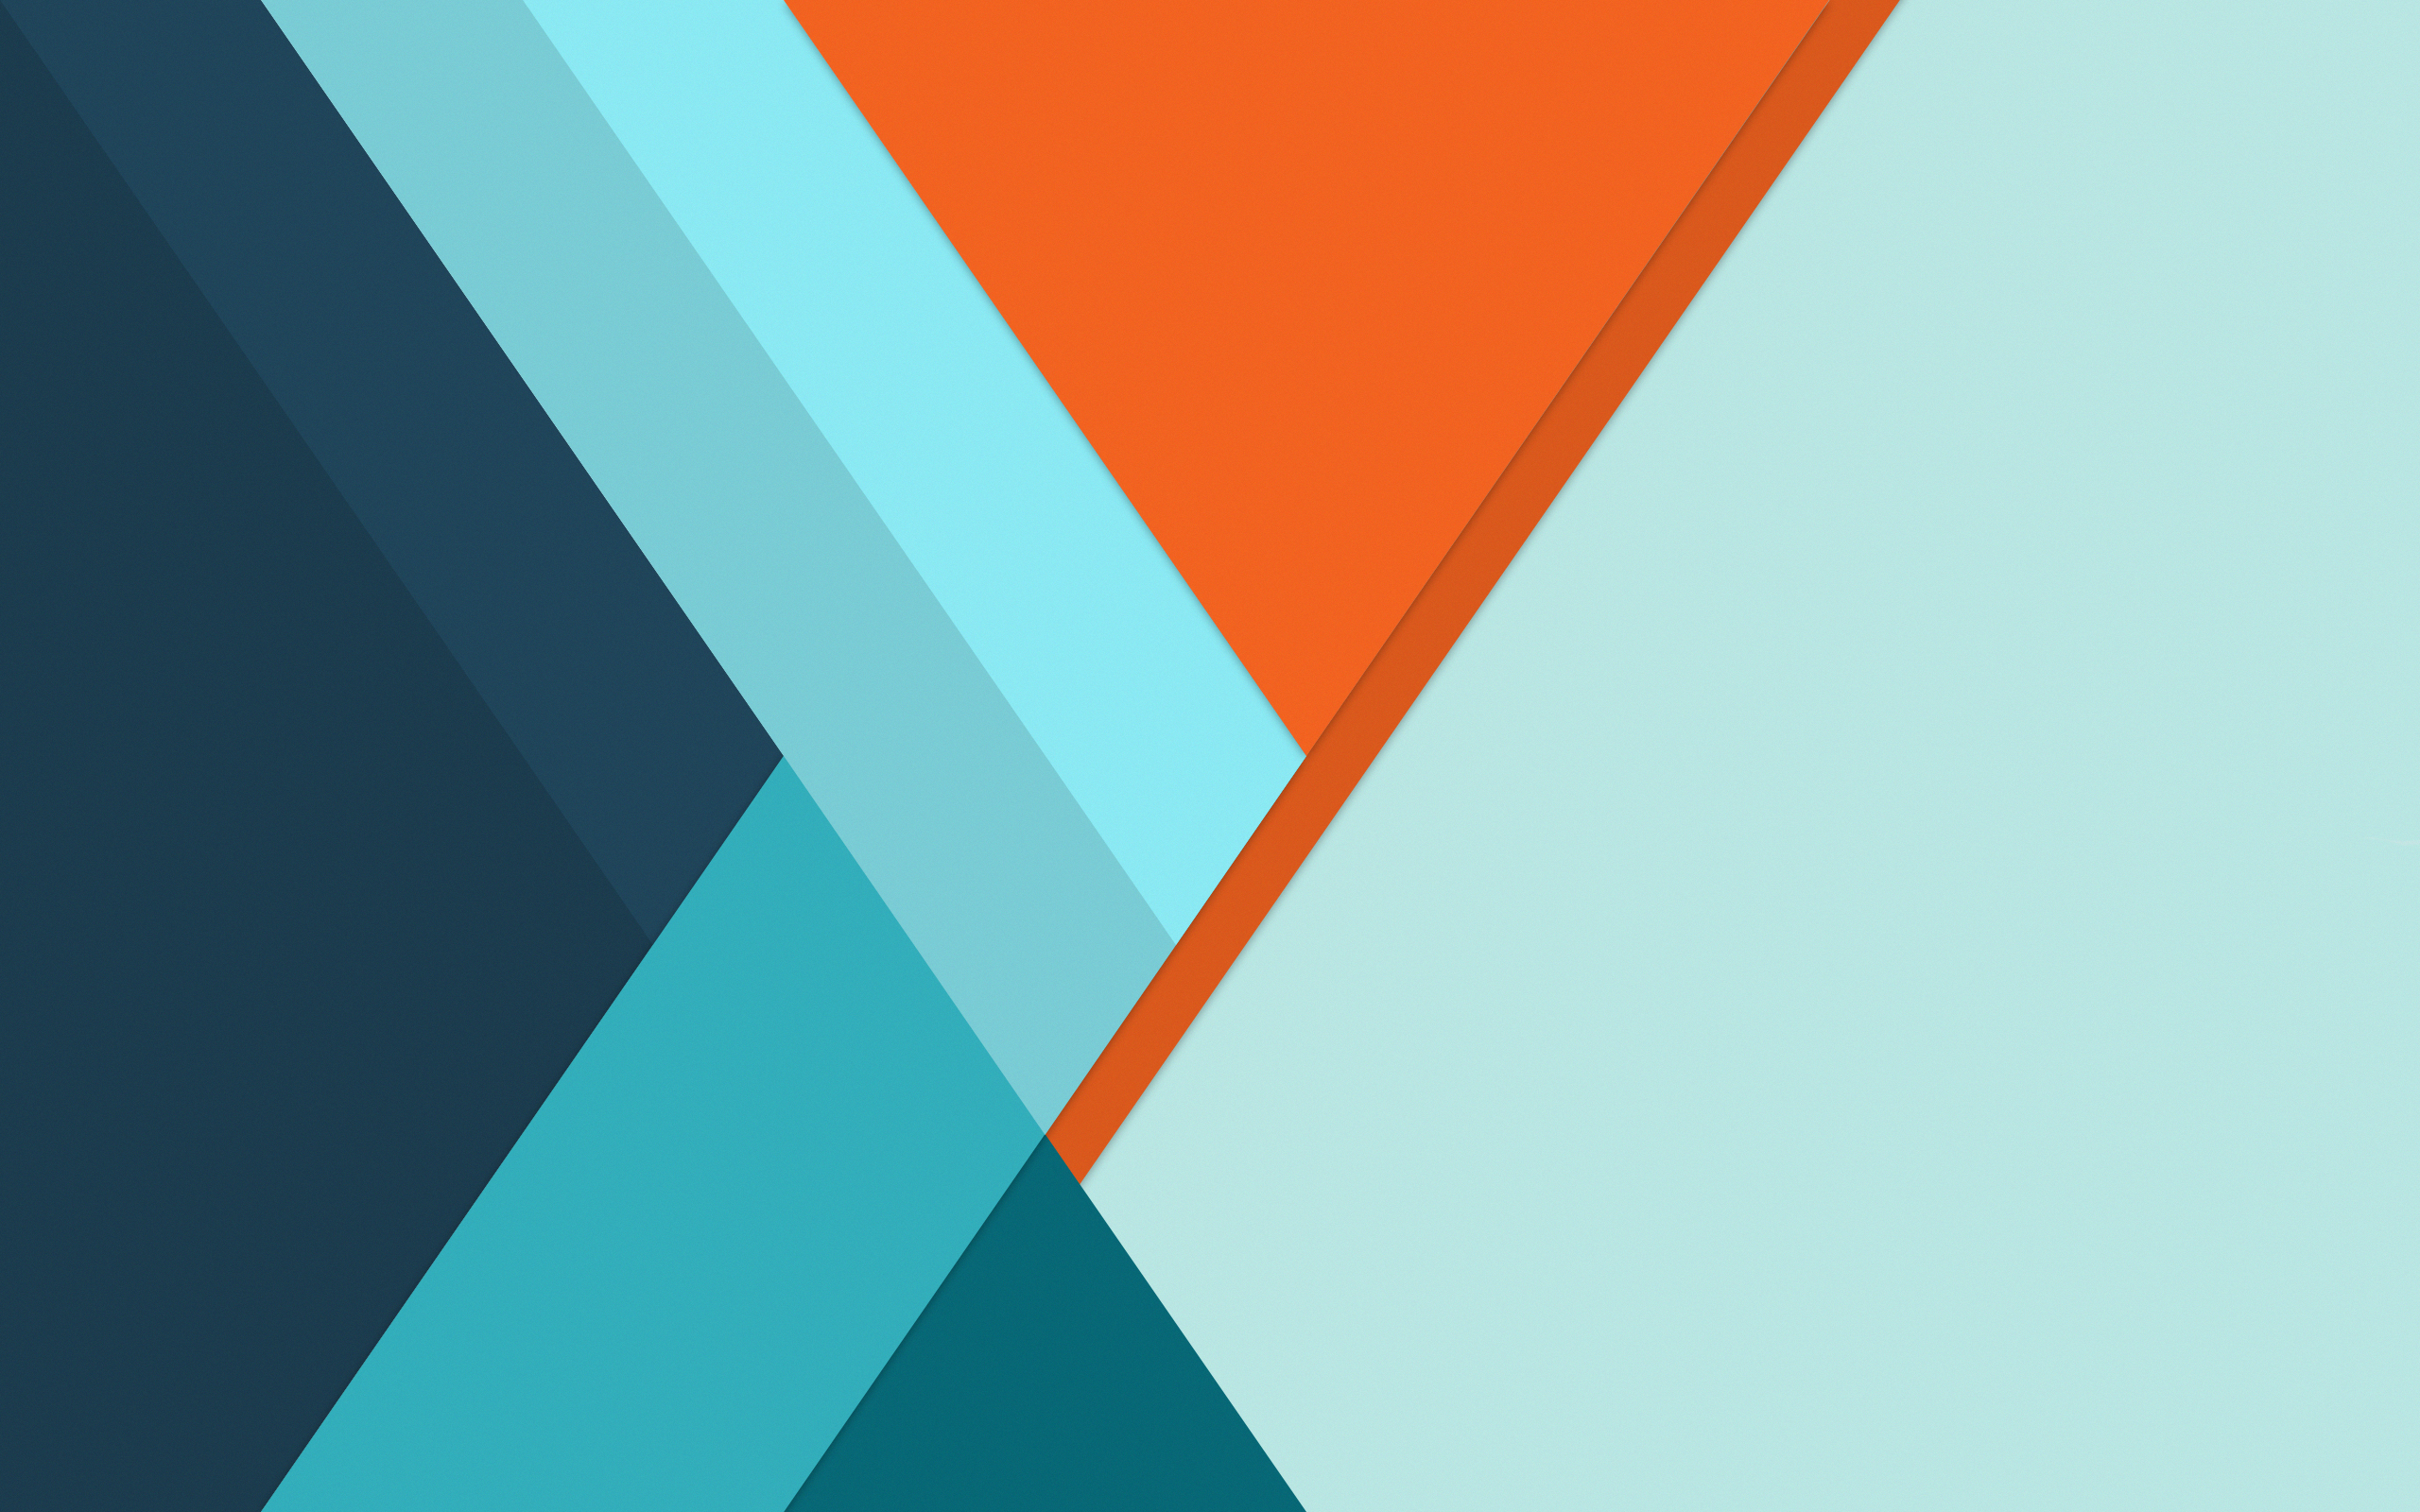 Android lollipop material design by for Material design wallpaper 4k